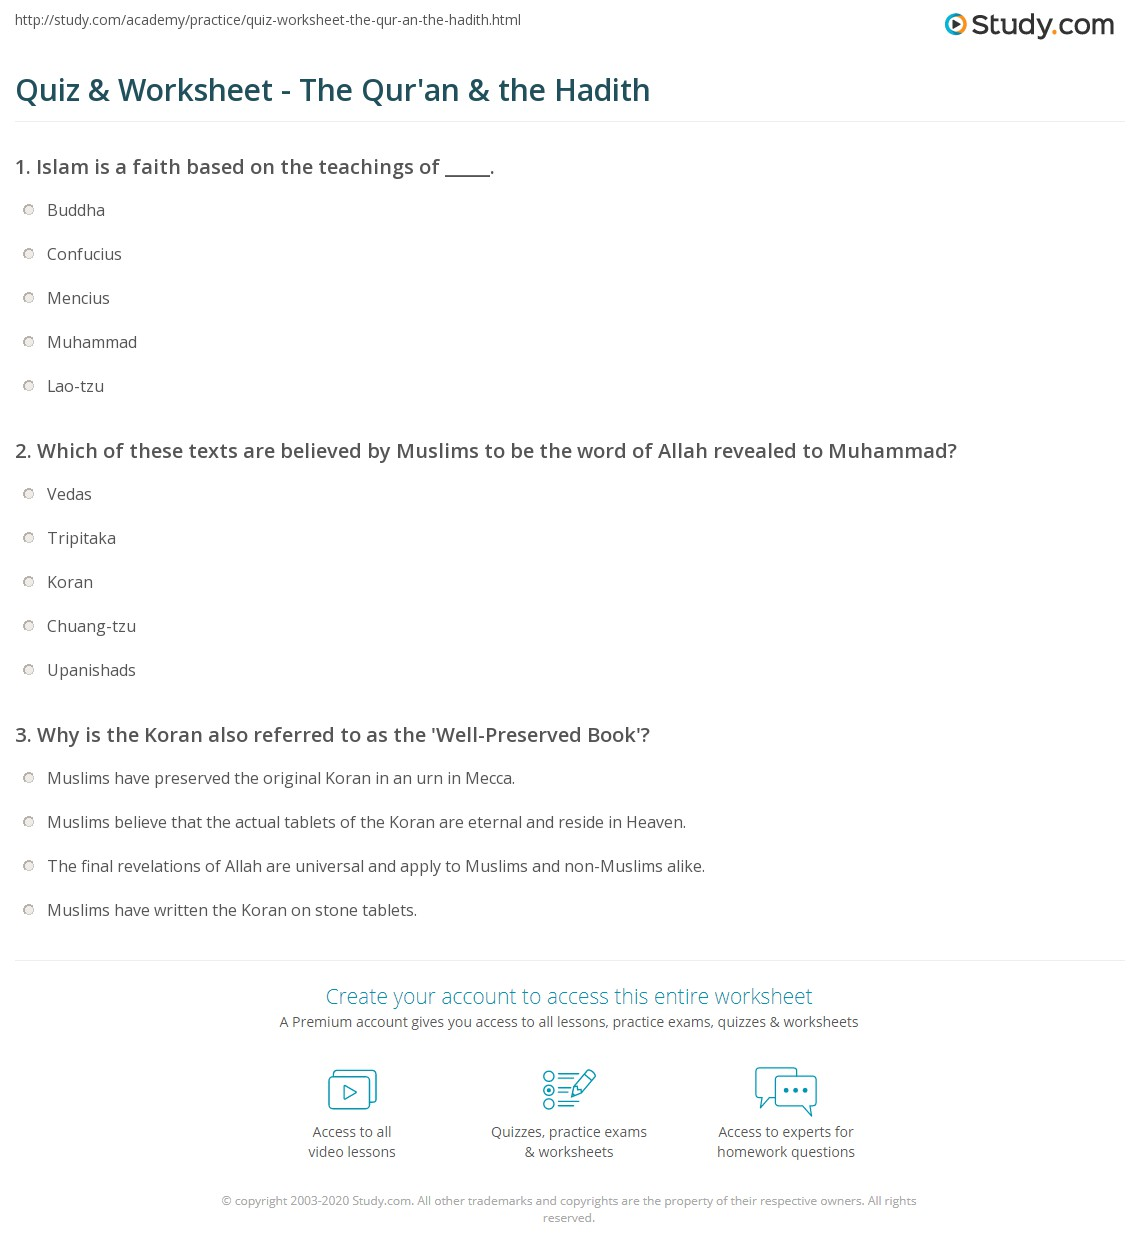 Quiz & Worksheet - The Qur'an & the Hadith   Study com